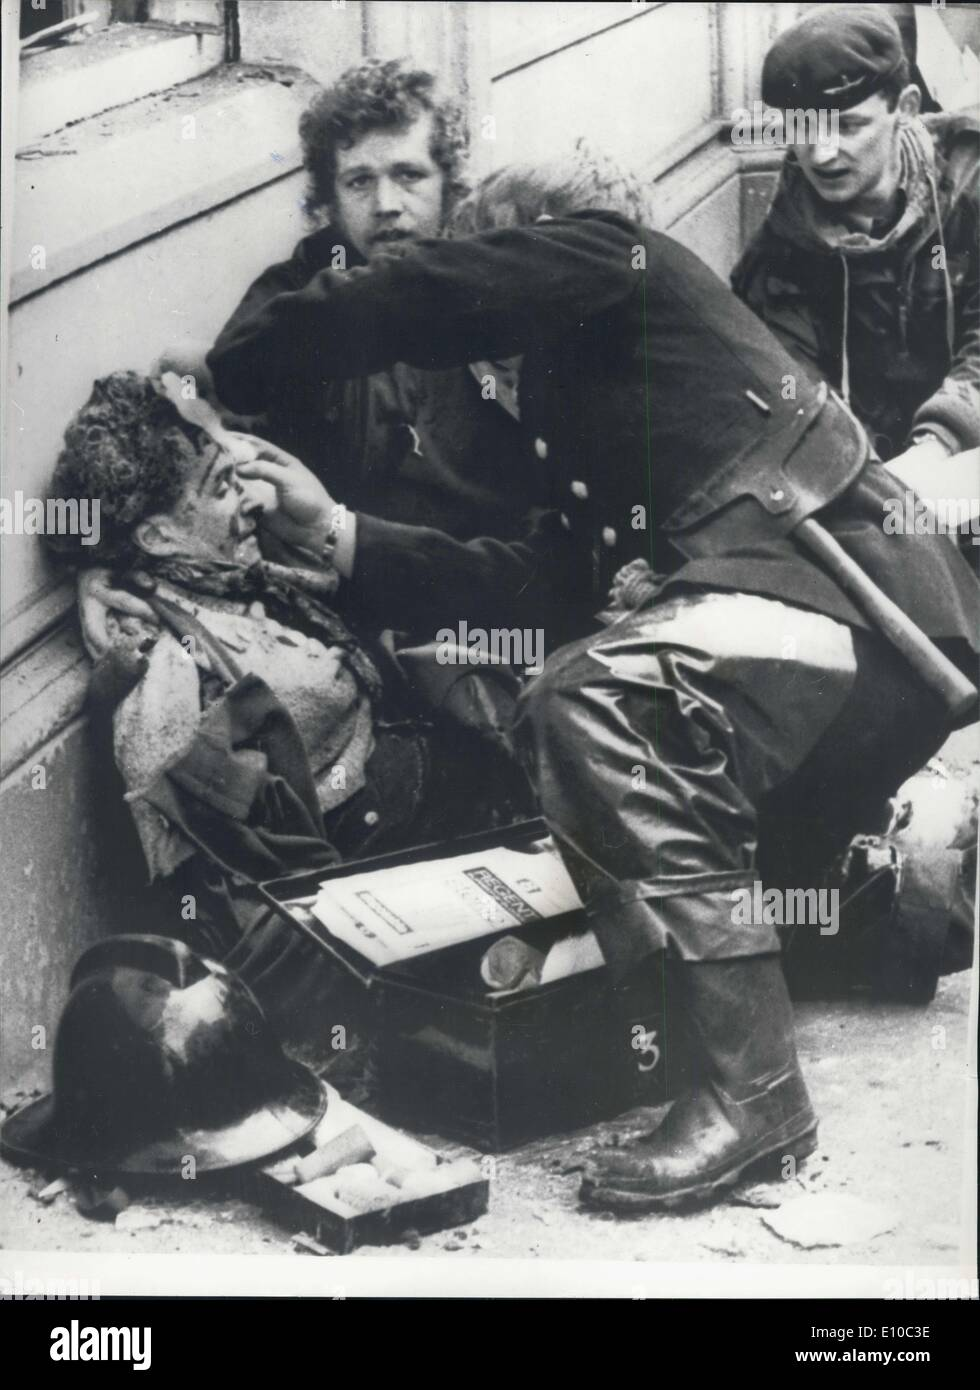 Mar. 21, 1972 - 6 killed and 146 injured in bomb explosion in Belfast.: Six people were killed and 146 injured by - Stock Image